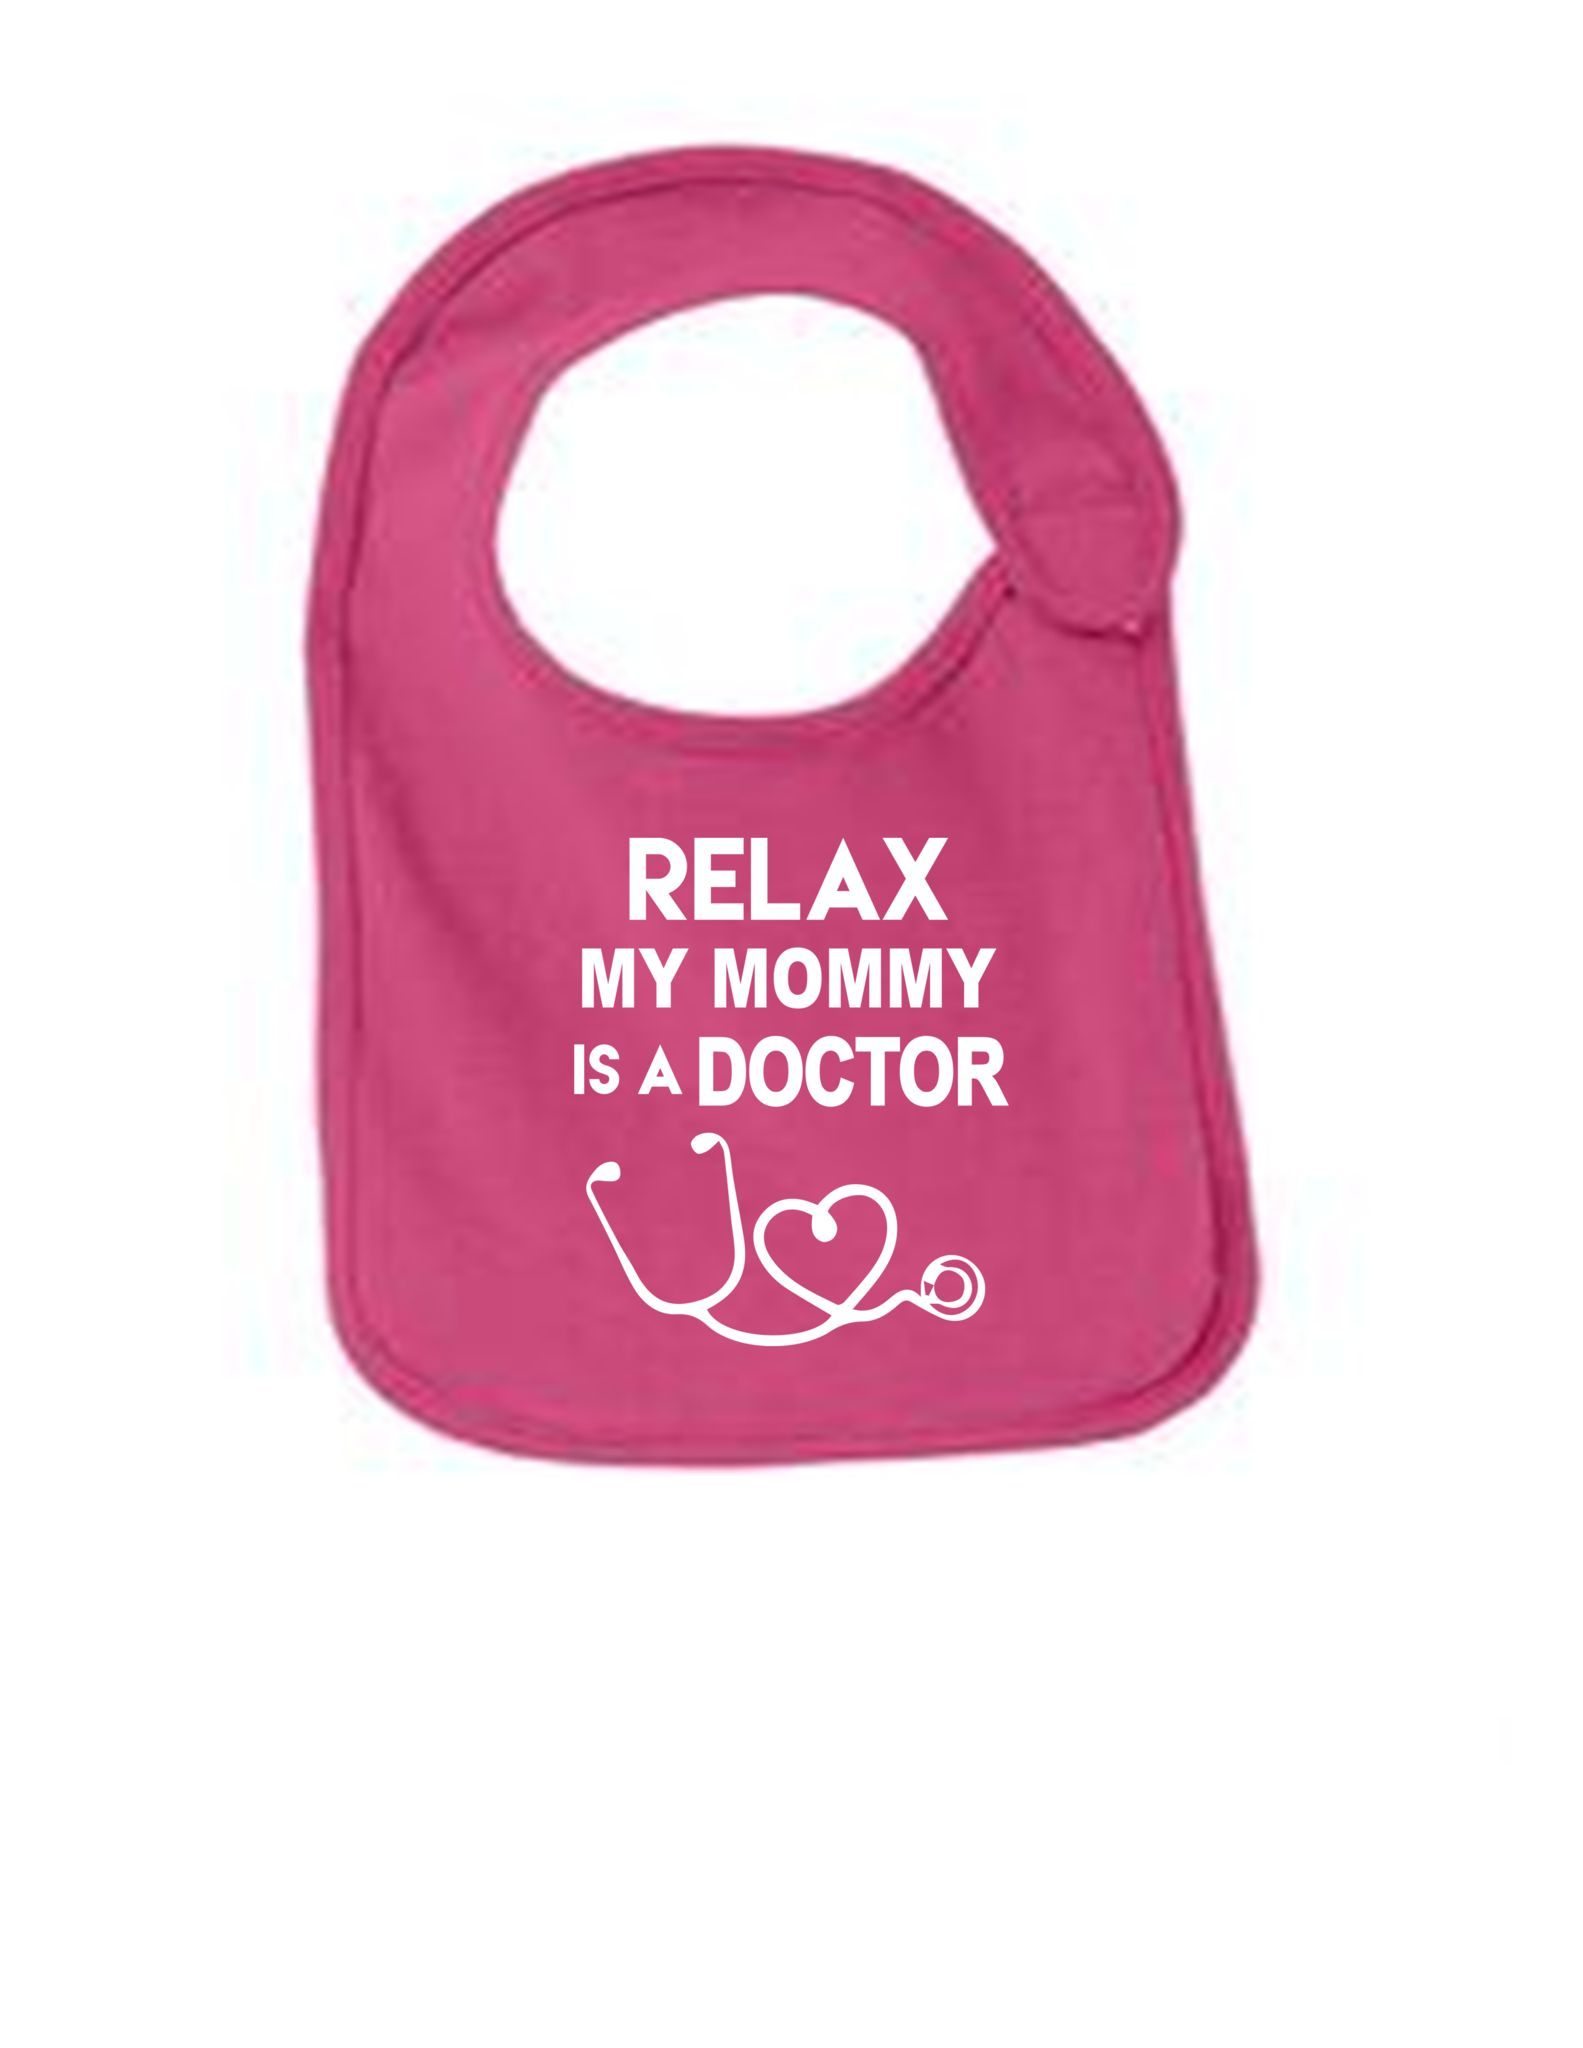 Relax My Mommy Is a Doctor Bib